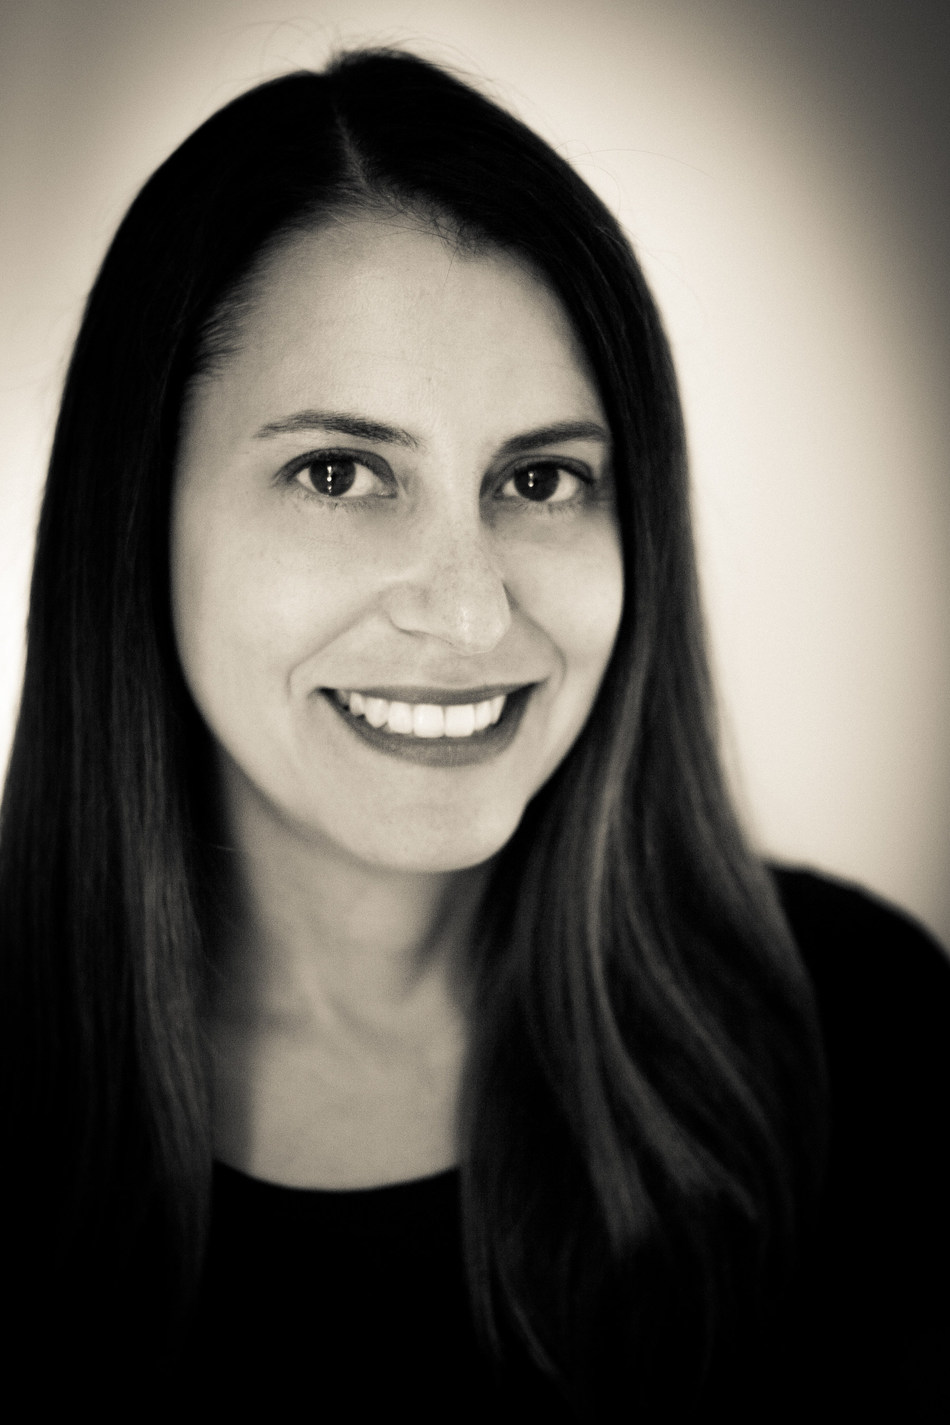 SPYSCAPE announces the launch of its Content Division, and the appointment of former Miramax Films, Focus Features and FilmNation executive, Allison Silver, as Chief Content Officer.